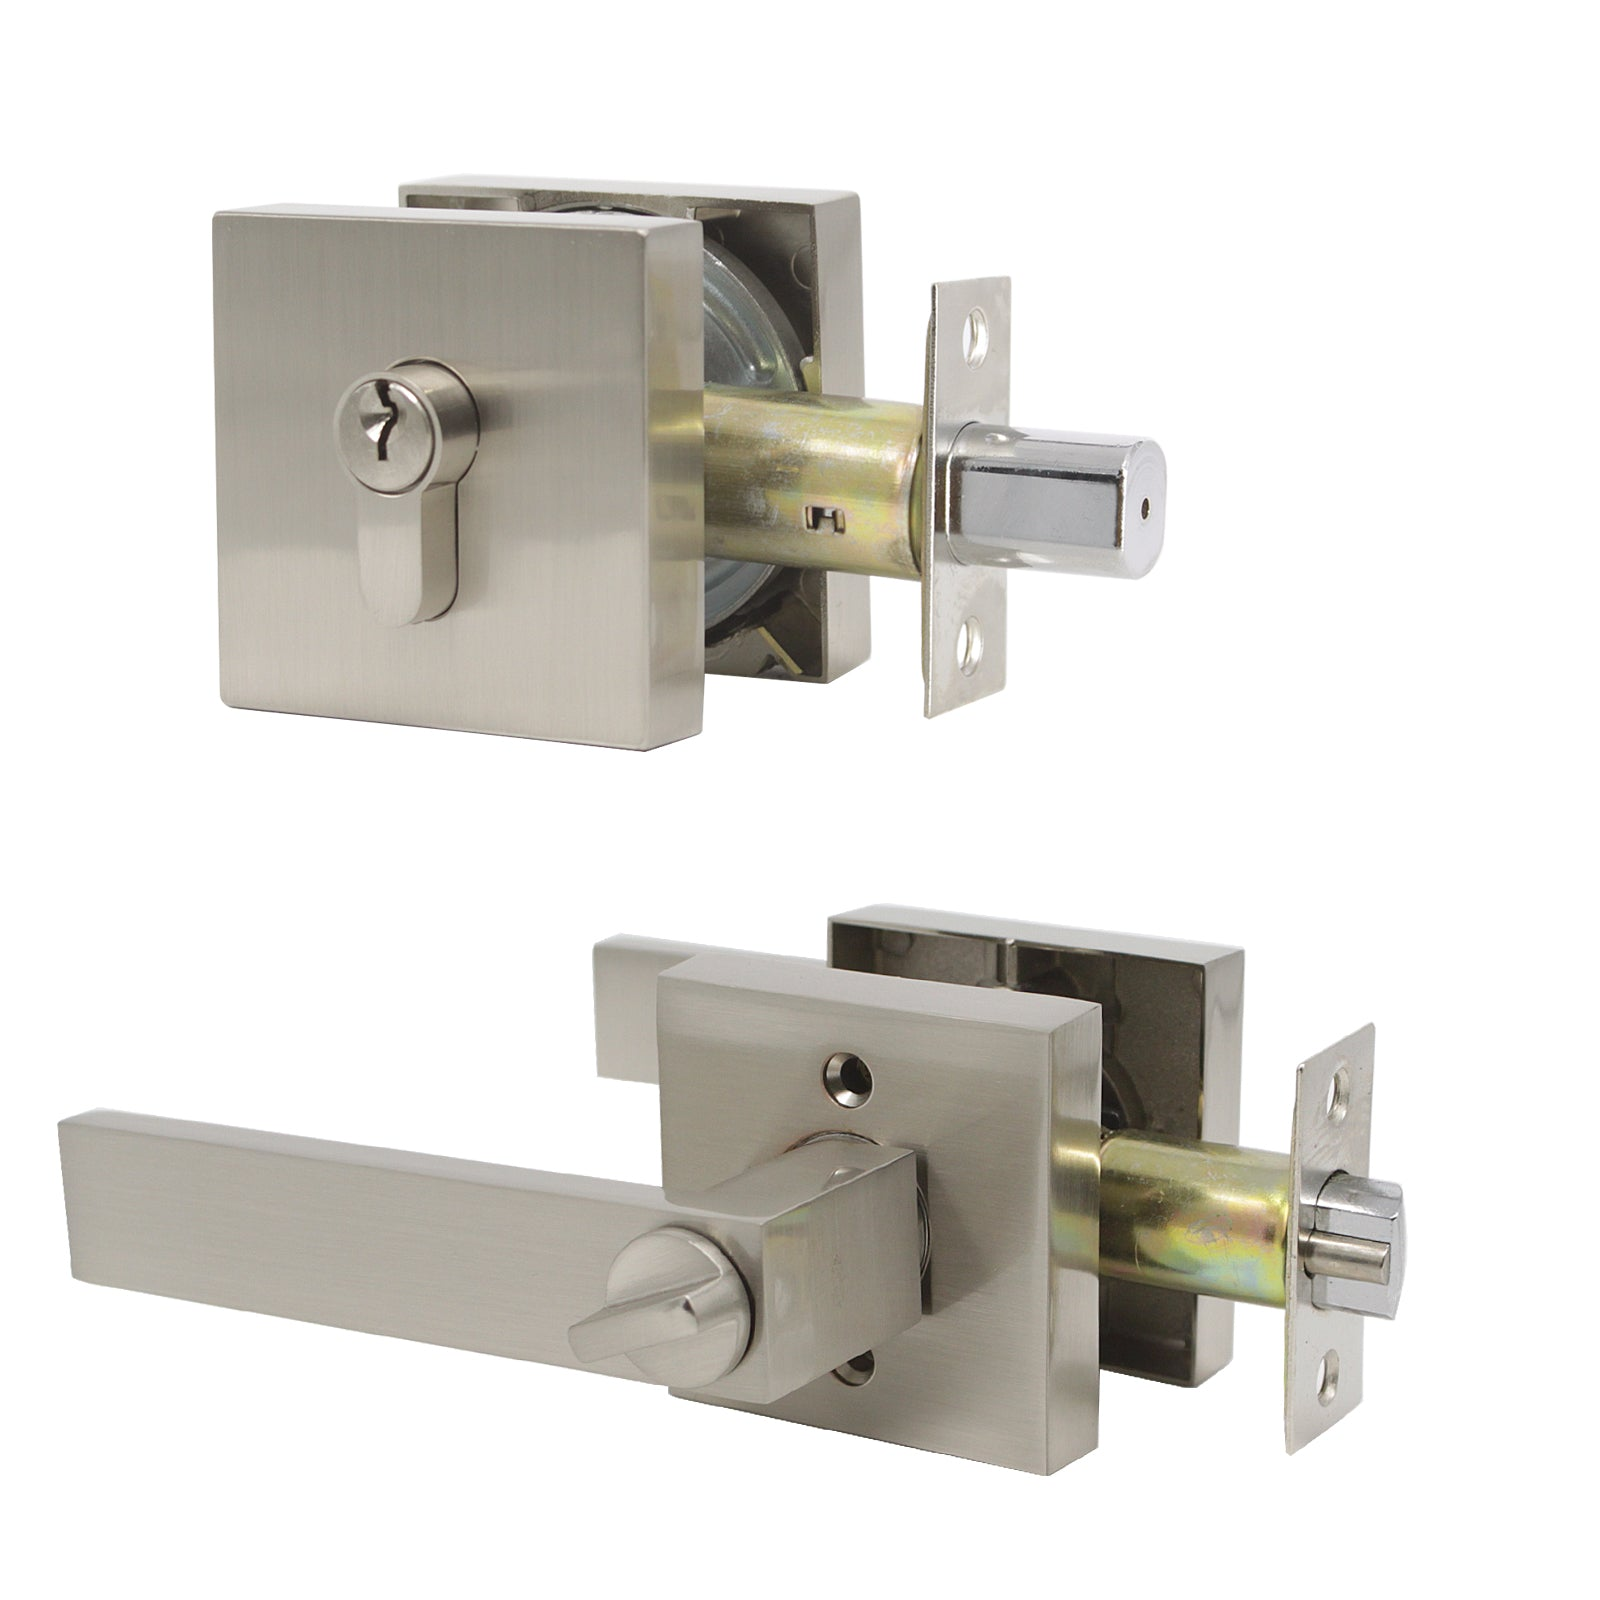 Keyed Alike Door Lever /& Deadbolt Set for Front//Office Door Reversible for Right and Left Handed Satin Nickel 6 Pack Entry Lever Lockset and Double Cylinder Deadbolt Combination Set with Same Keys